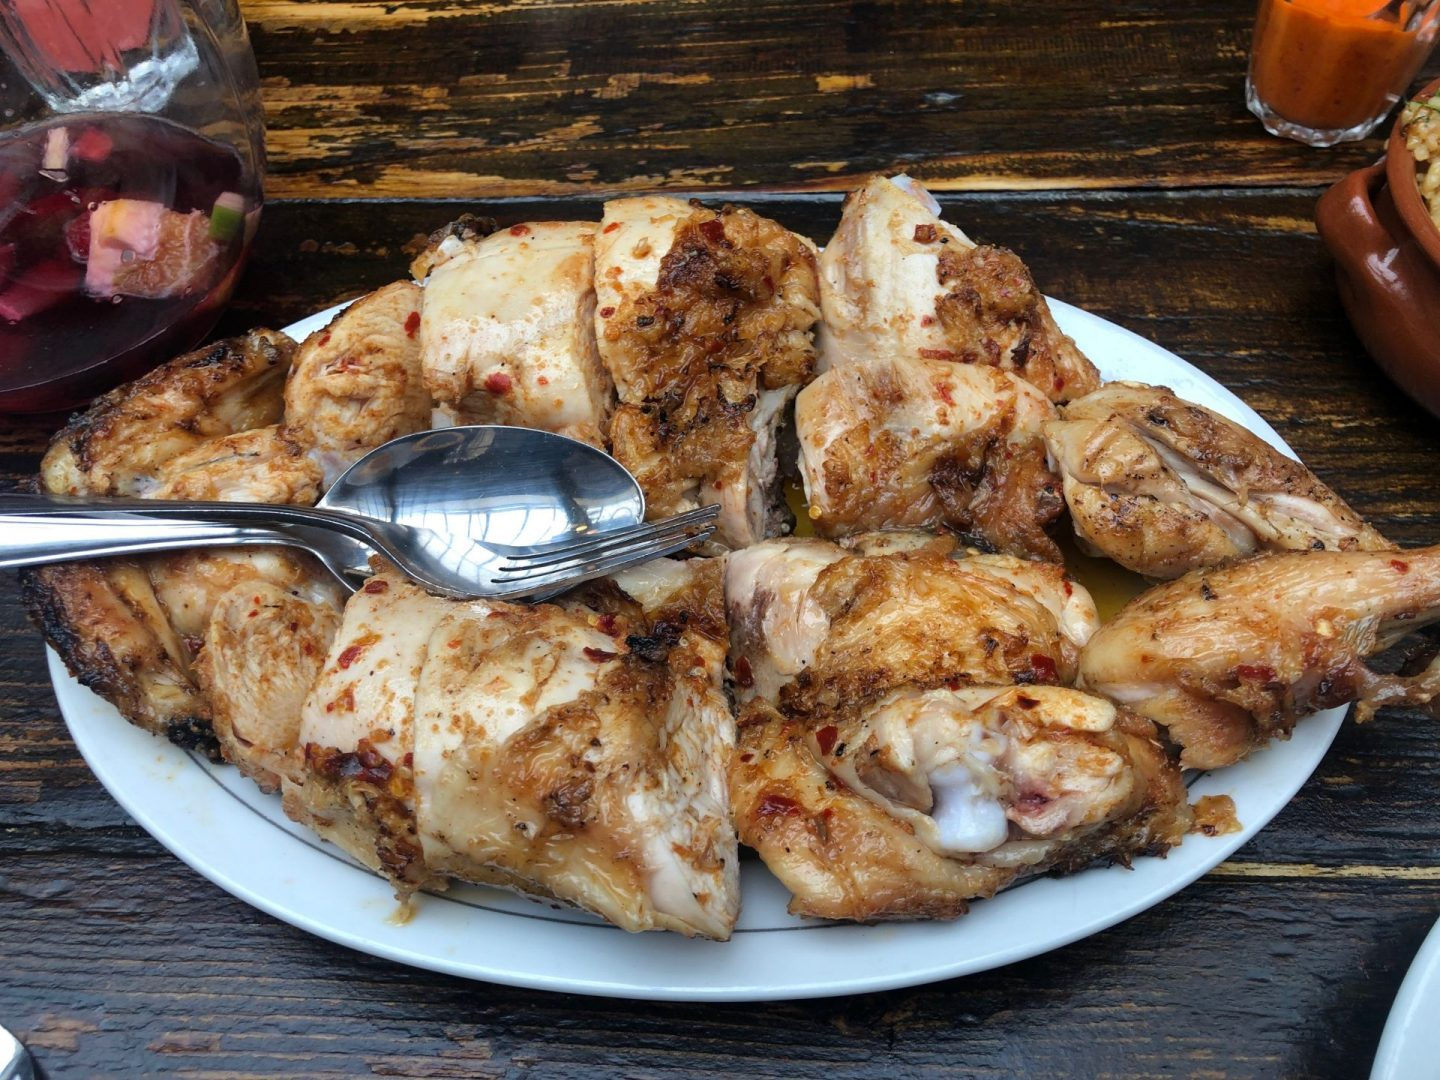 Casa do Frango flame grilled Piri chicken carefully arranged on a plate